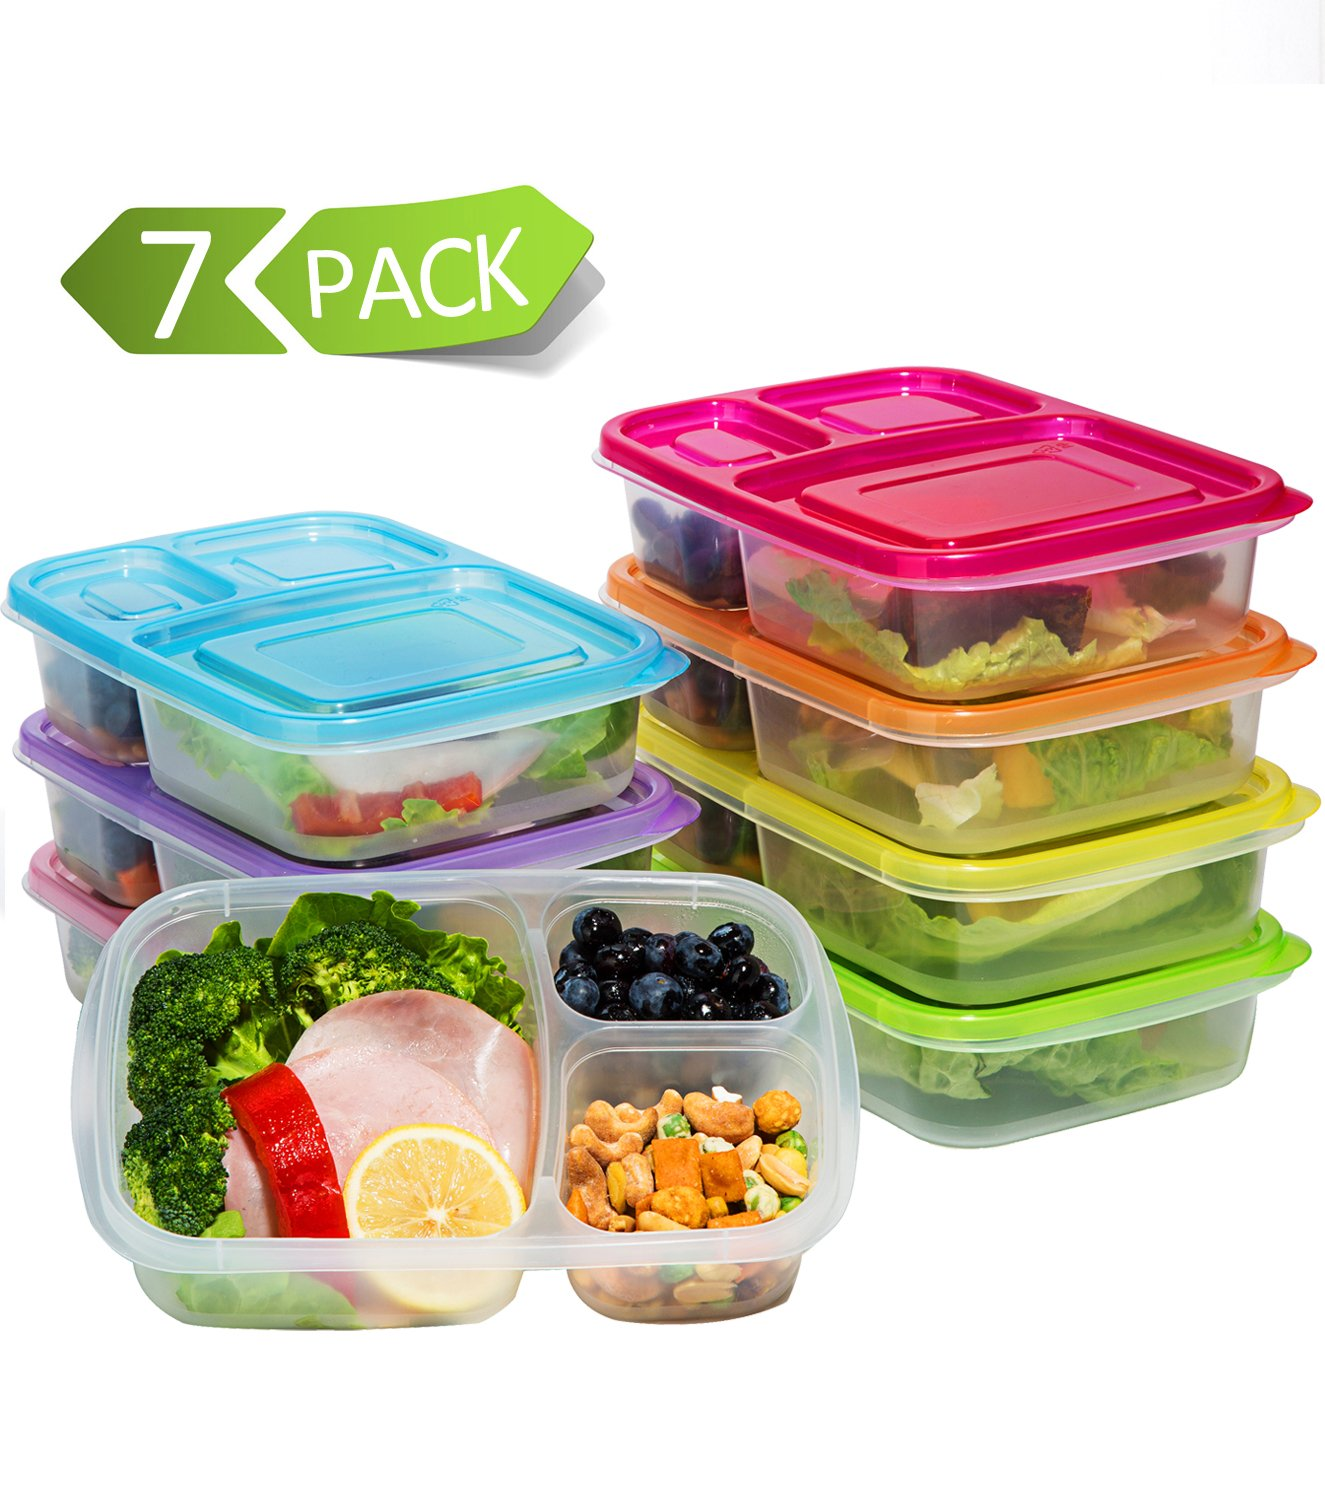 Top 20 Best Bento-Style Lunch Boxes for Kids 2017-2018 cover image